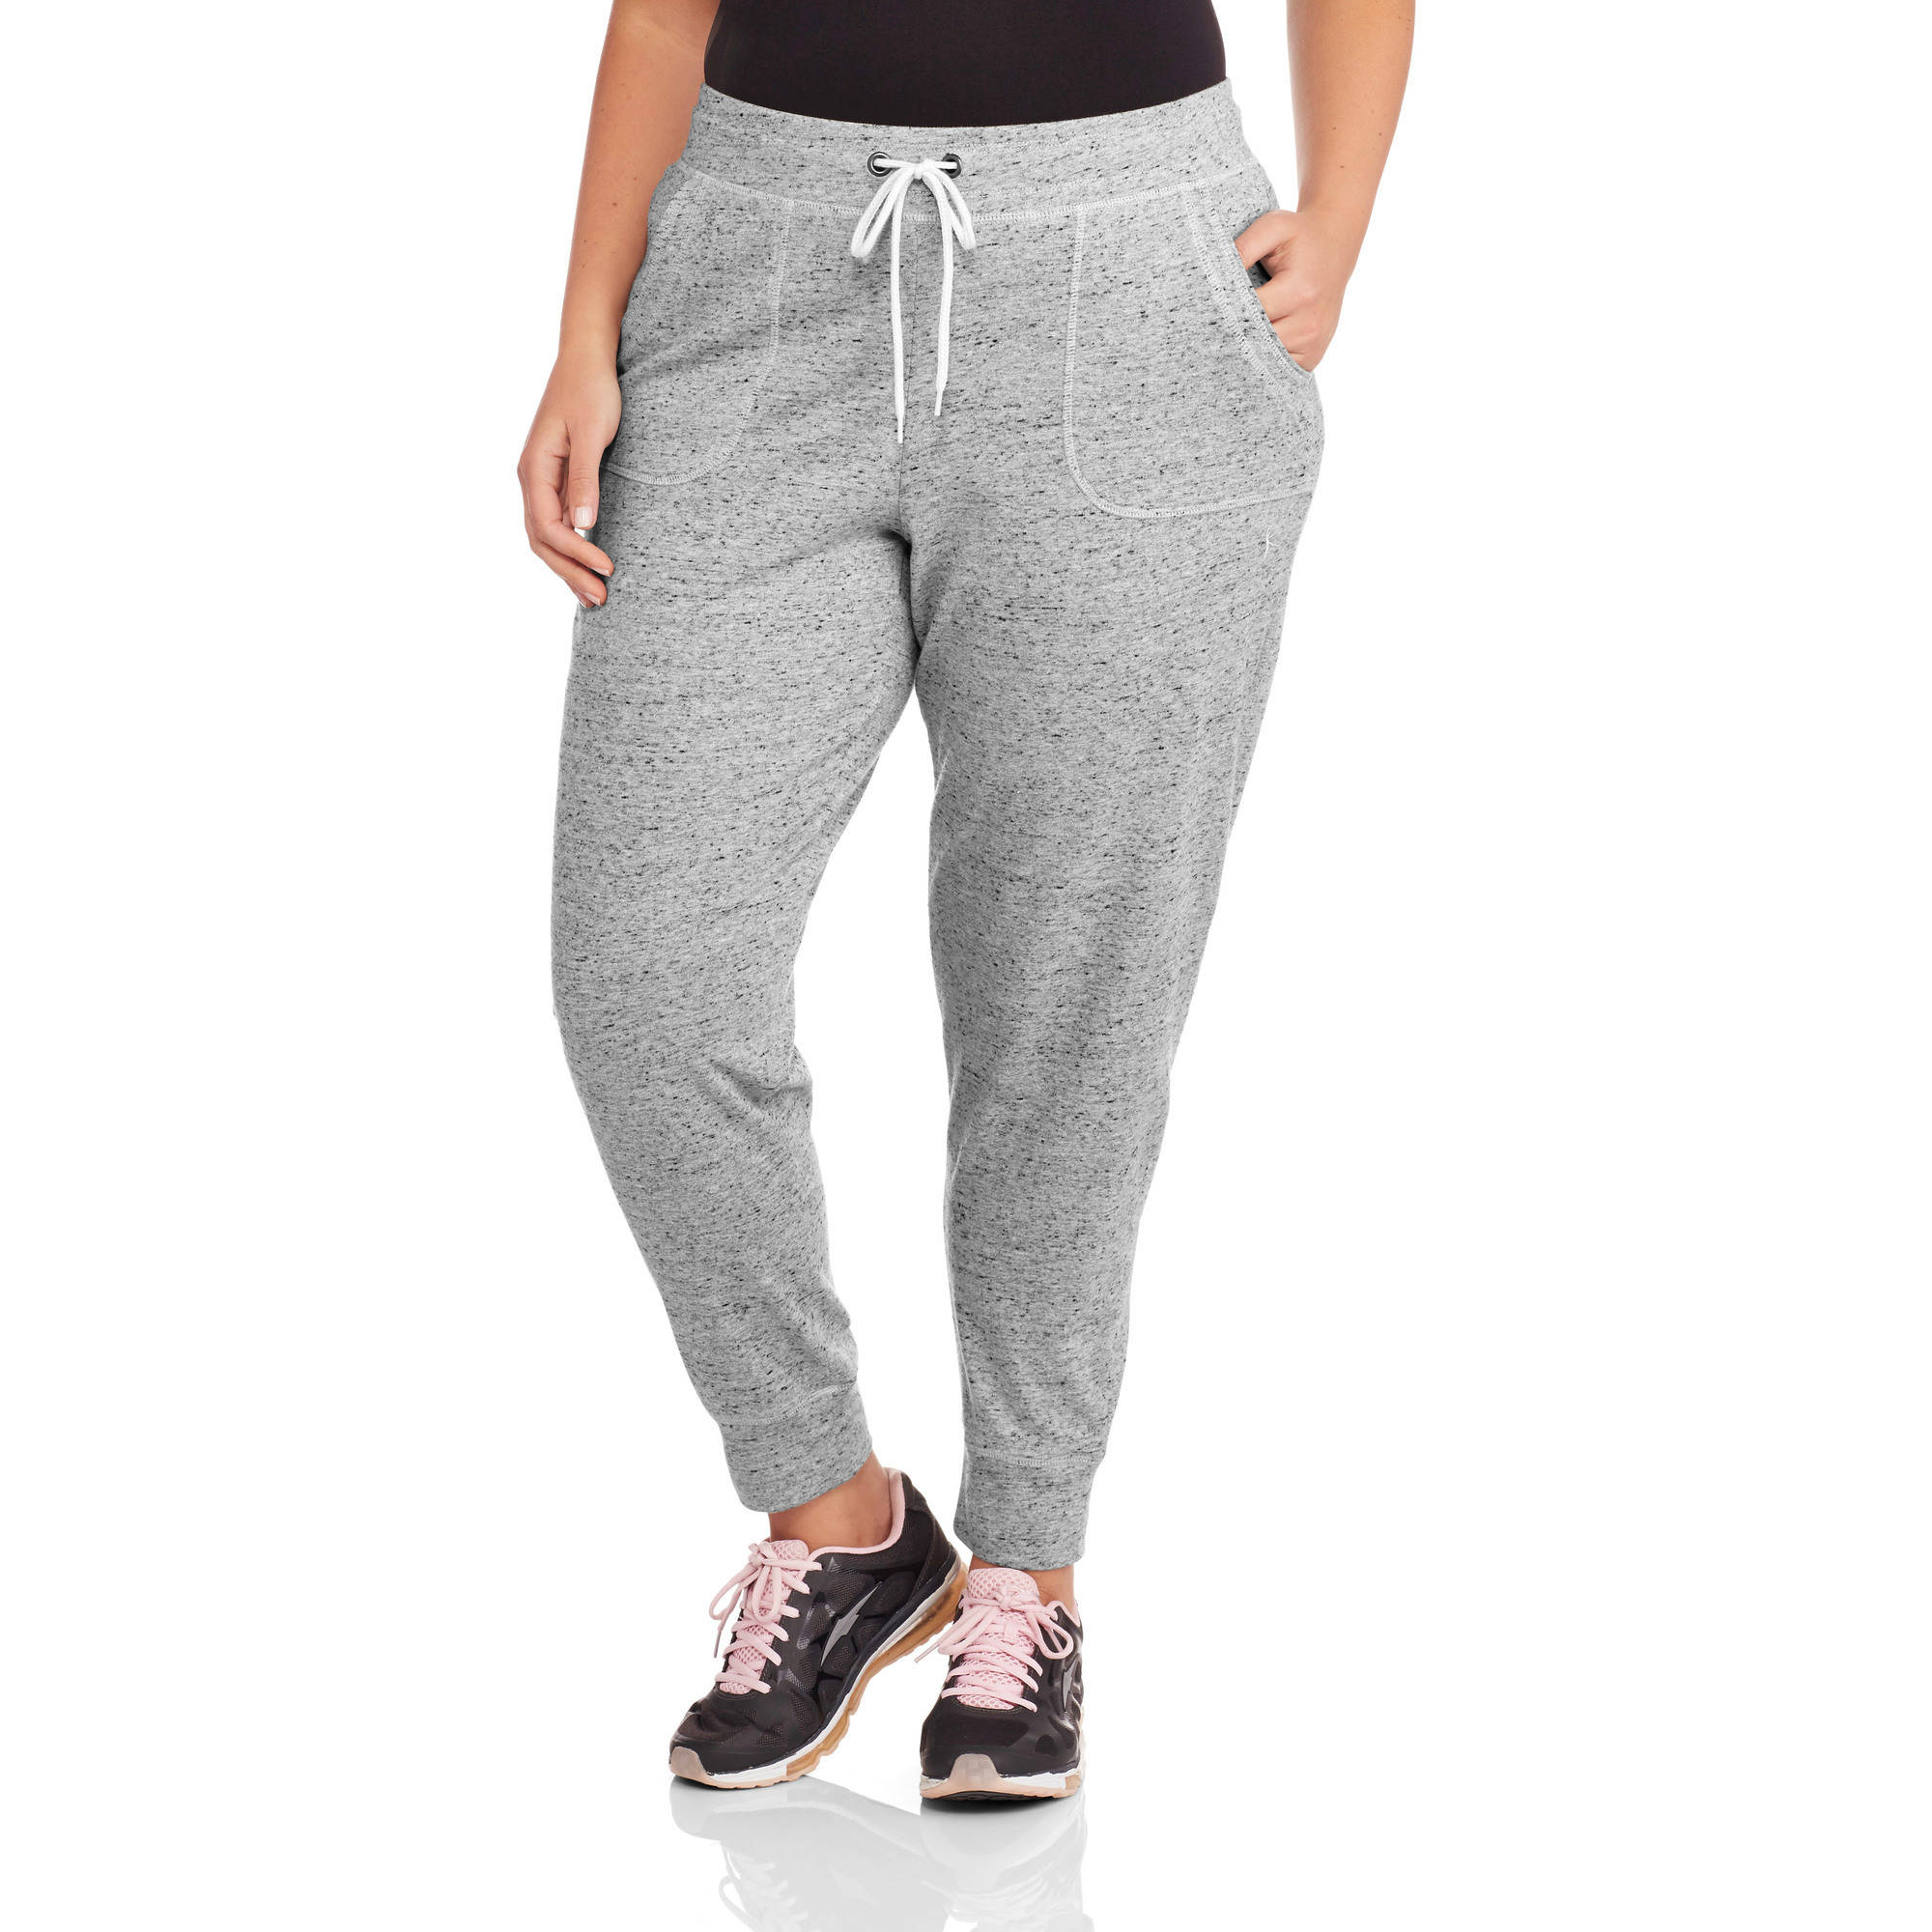 men/man select for newest first rate Women's Plus Size Fleece Sweatpant Regular and Petite Sizes